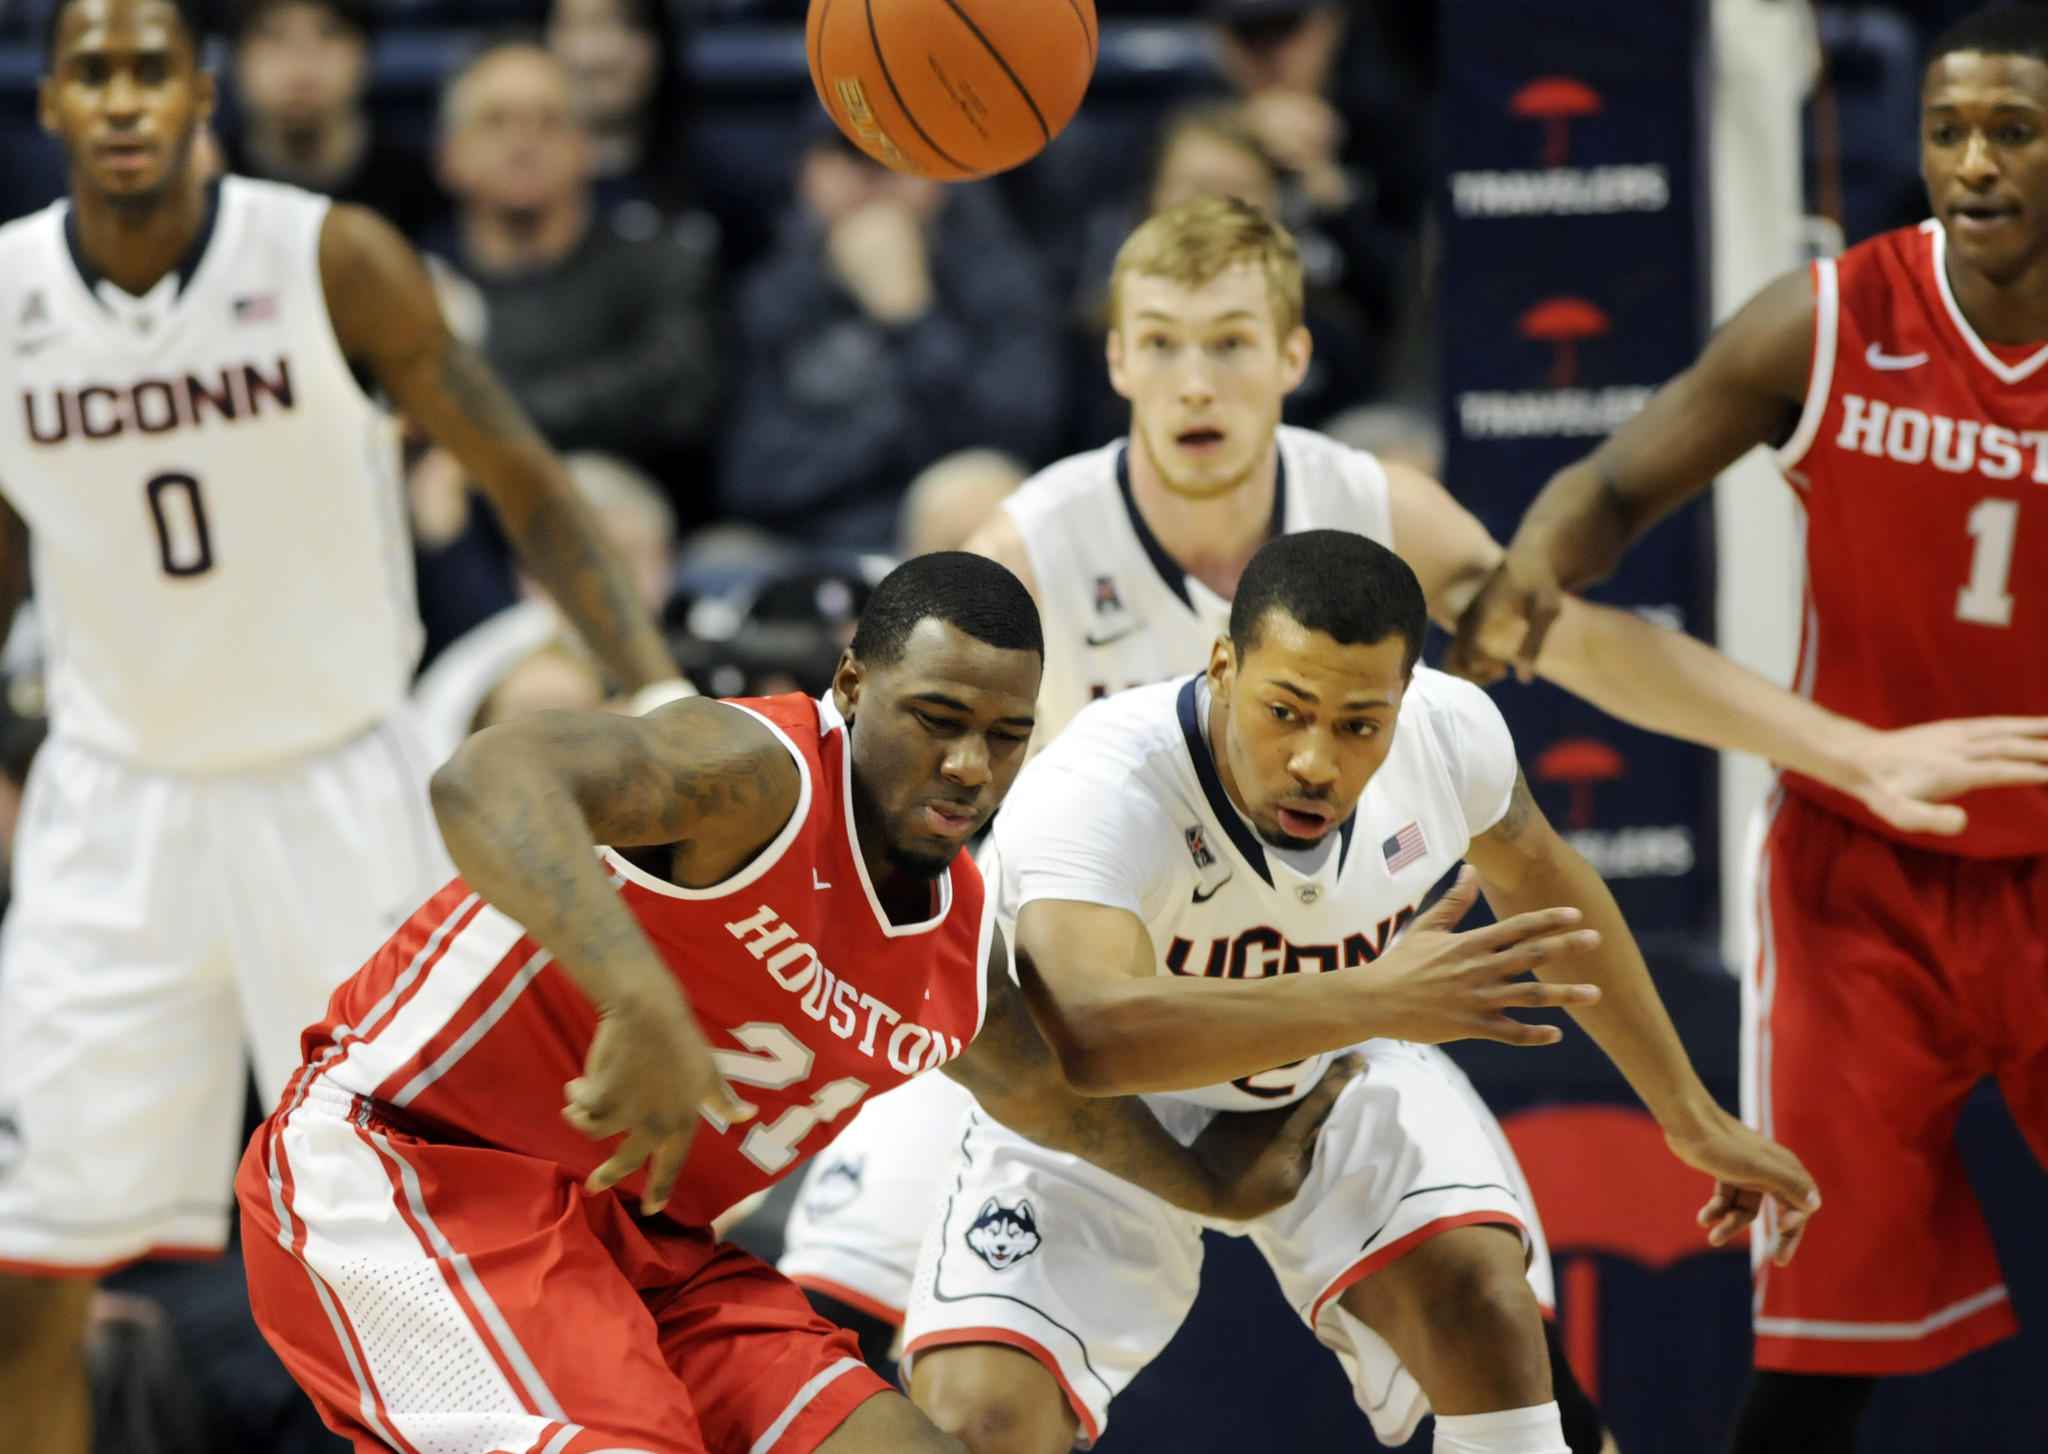 STORRS- 1/30/14- hc-uconn-men-houston-0131- Jherrod Stiggers of houston and Omar Calhoun fight for a loose ball in the first half. The UConn men met the Houston Cougars for a AAC rematch at Gampel Pavilion Thursday night. UConn won, 80-43. STEPHEN DUNN|sdunn@courant.com